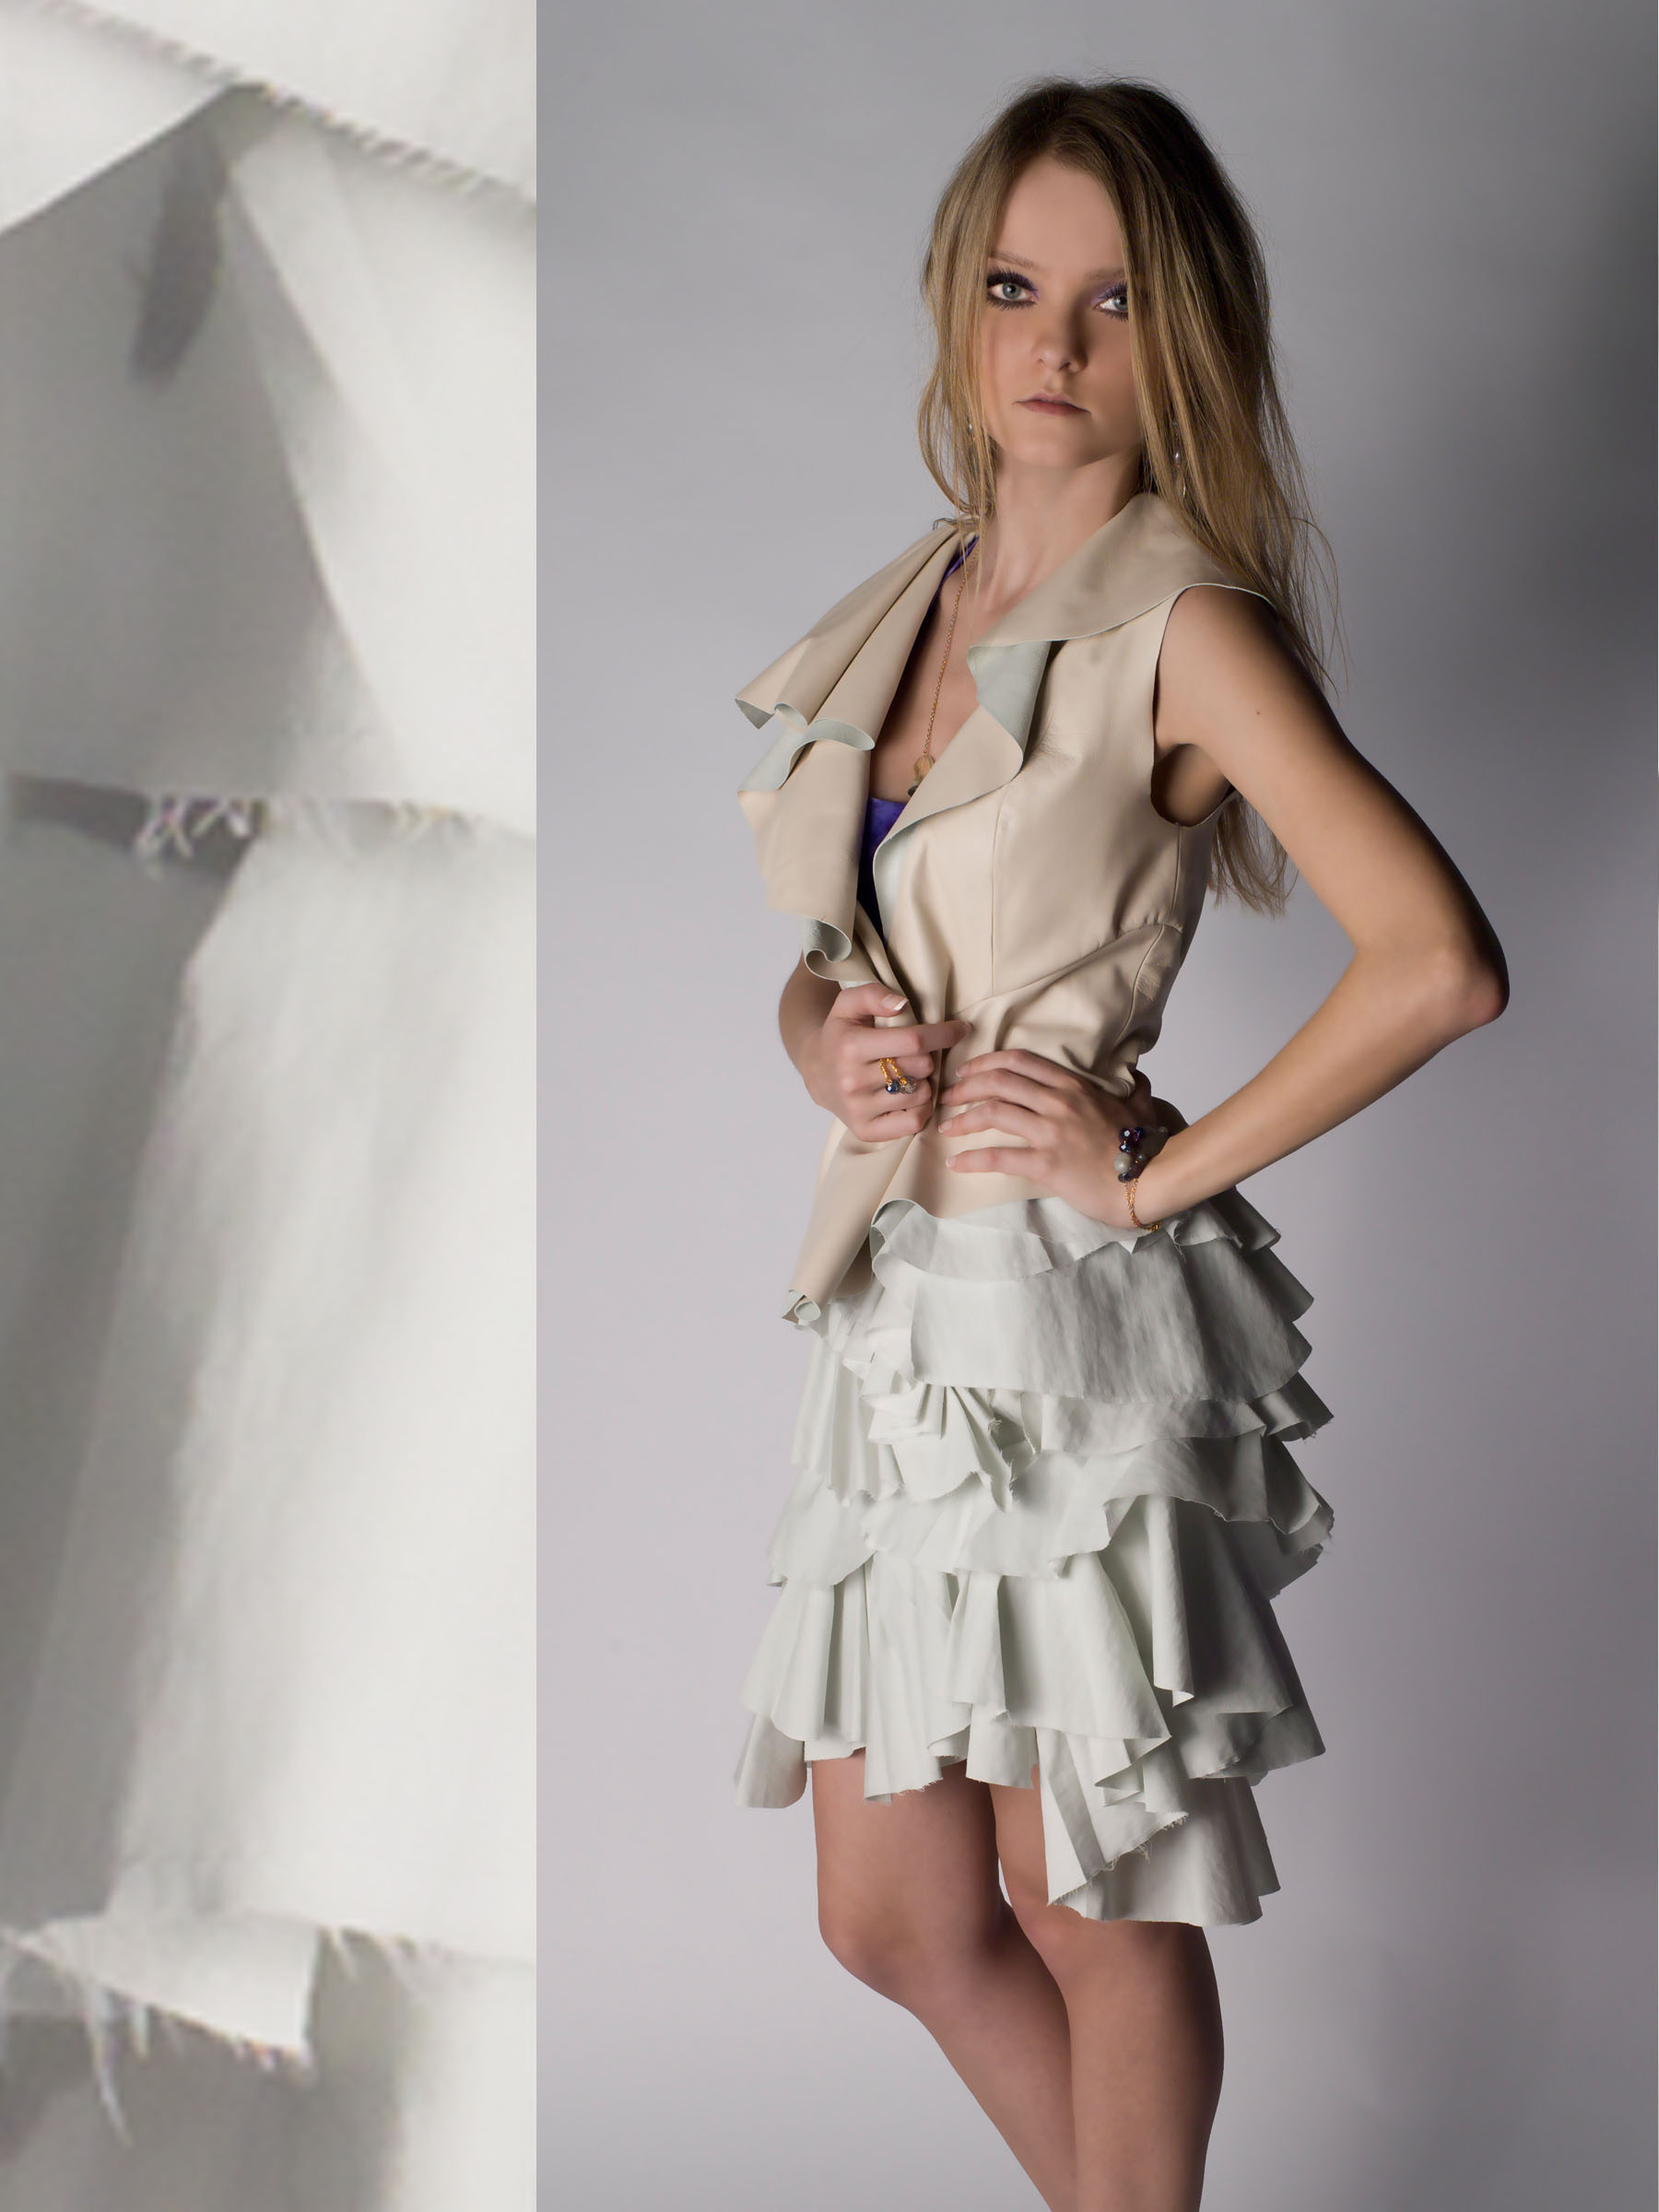 Fashion designs by 29andSeptember Studio